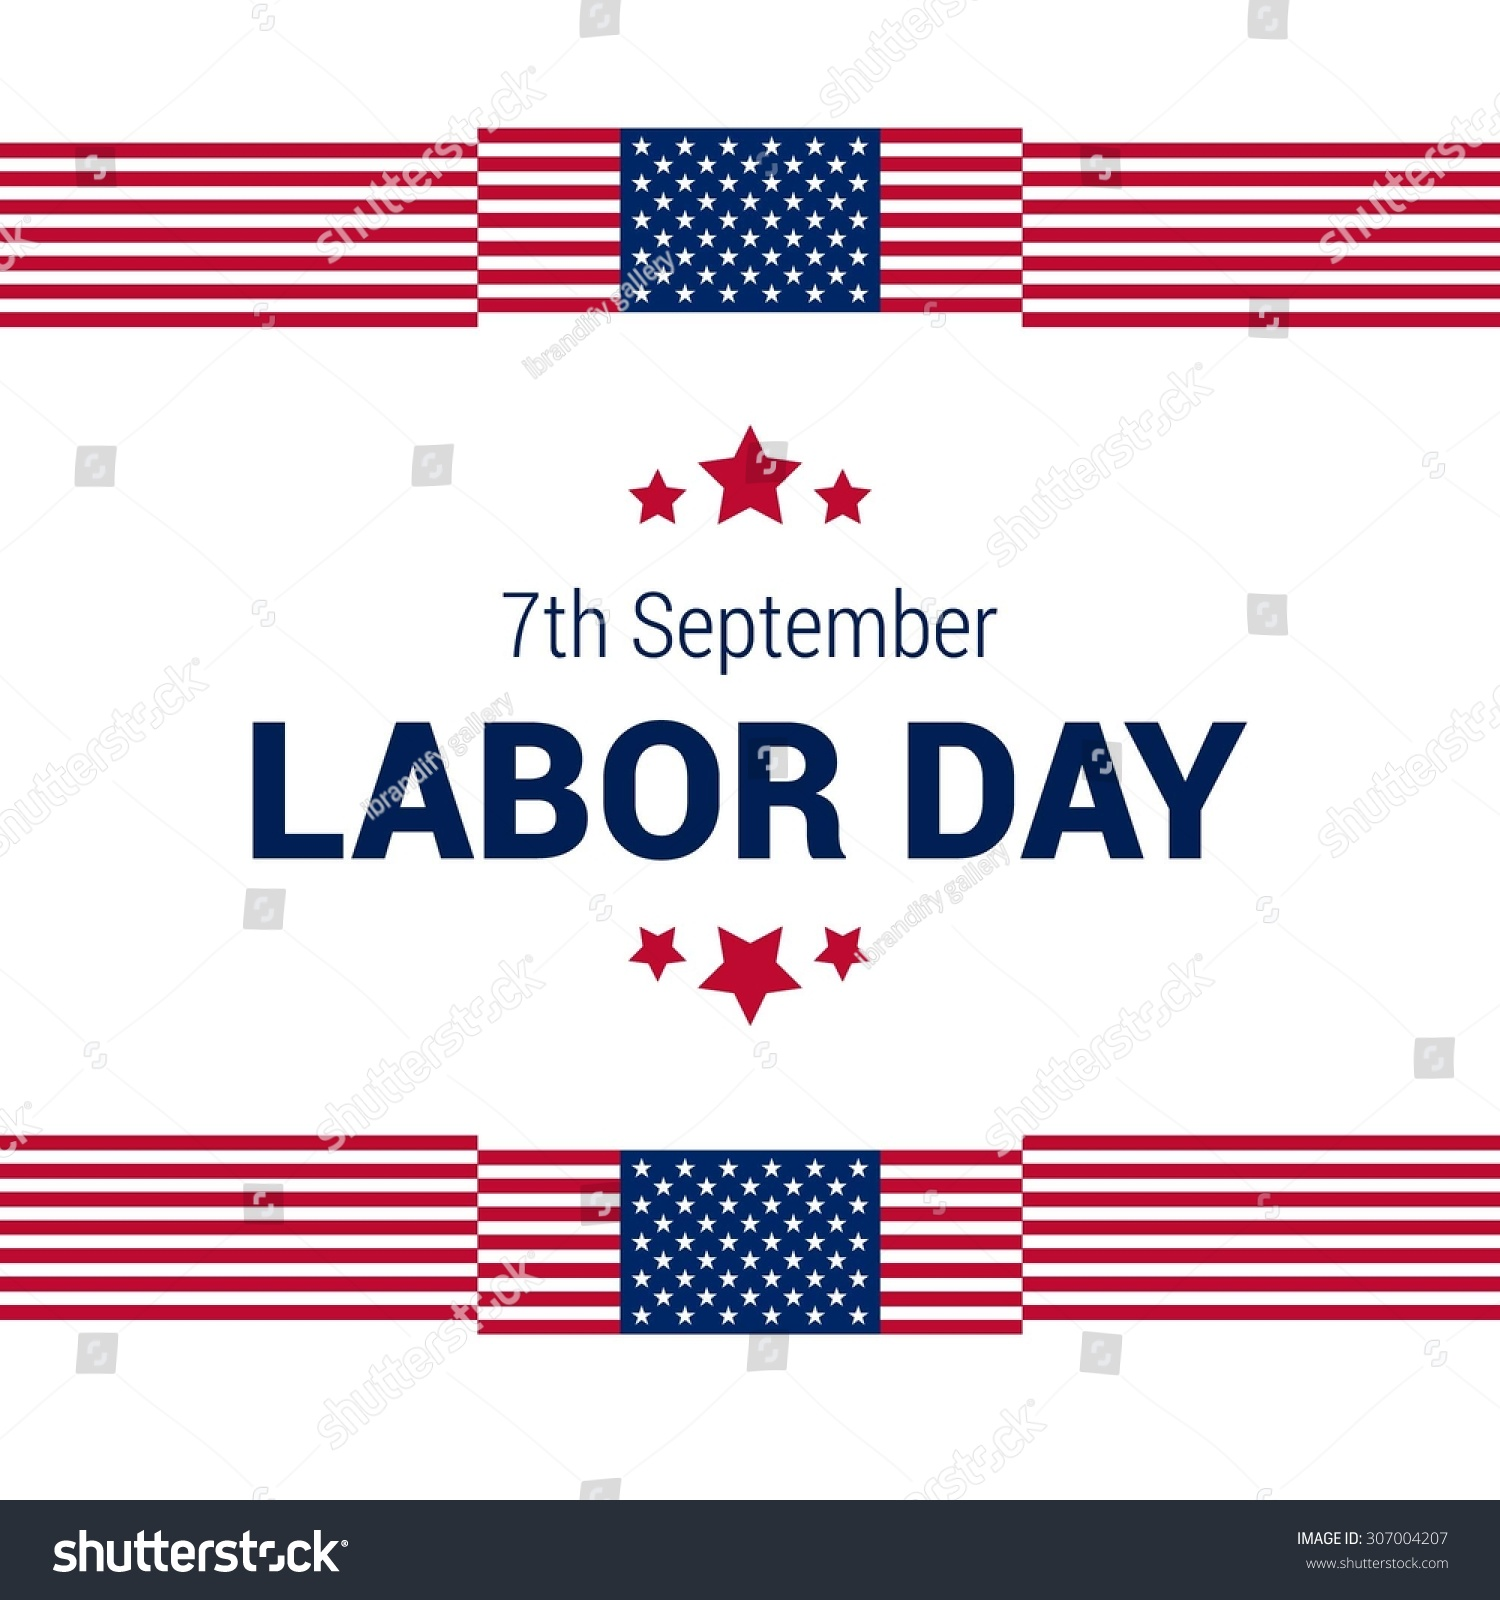 7th september labor day american flag greeting card kristyandbryce Image collections